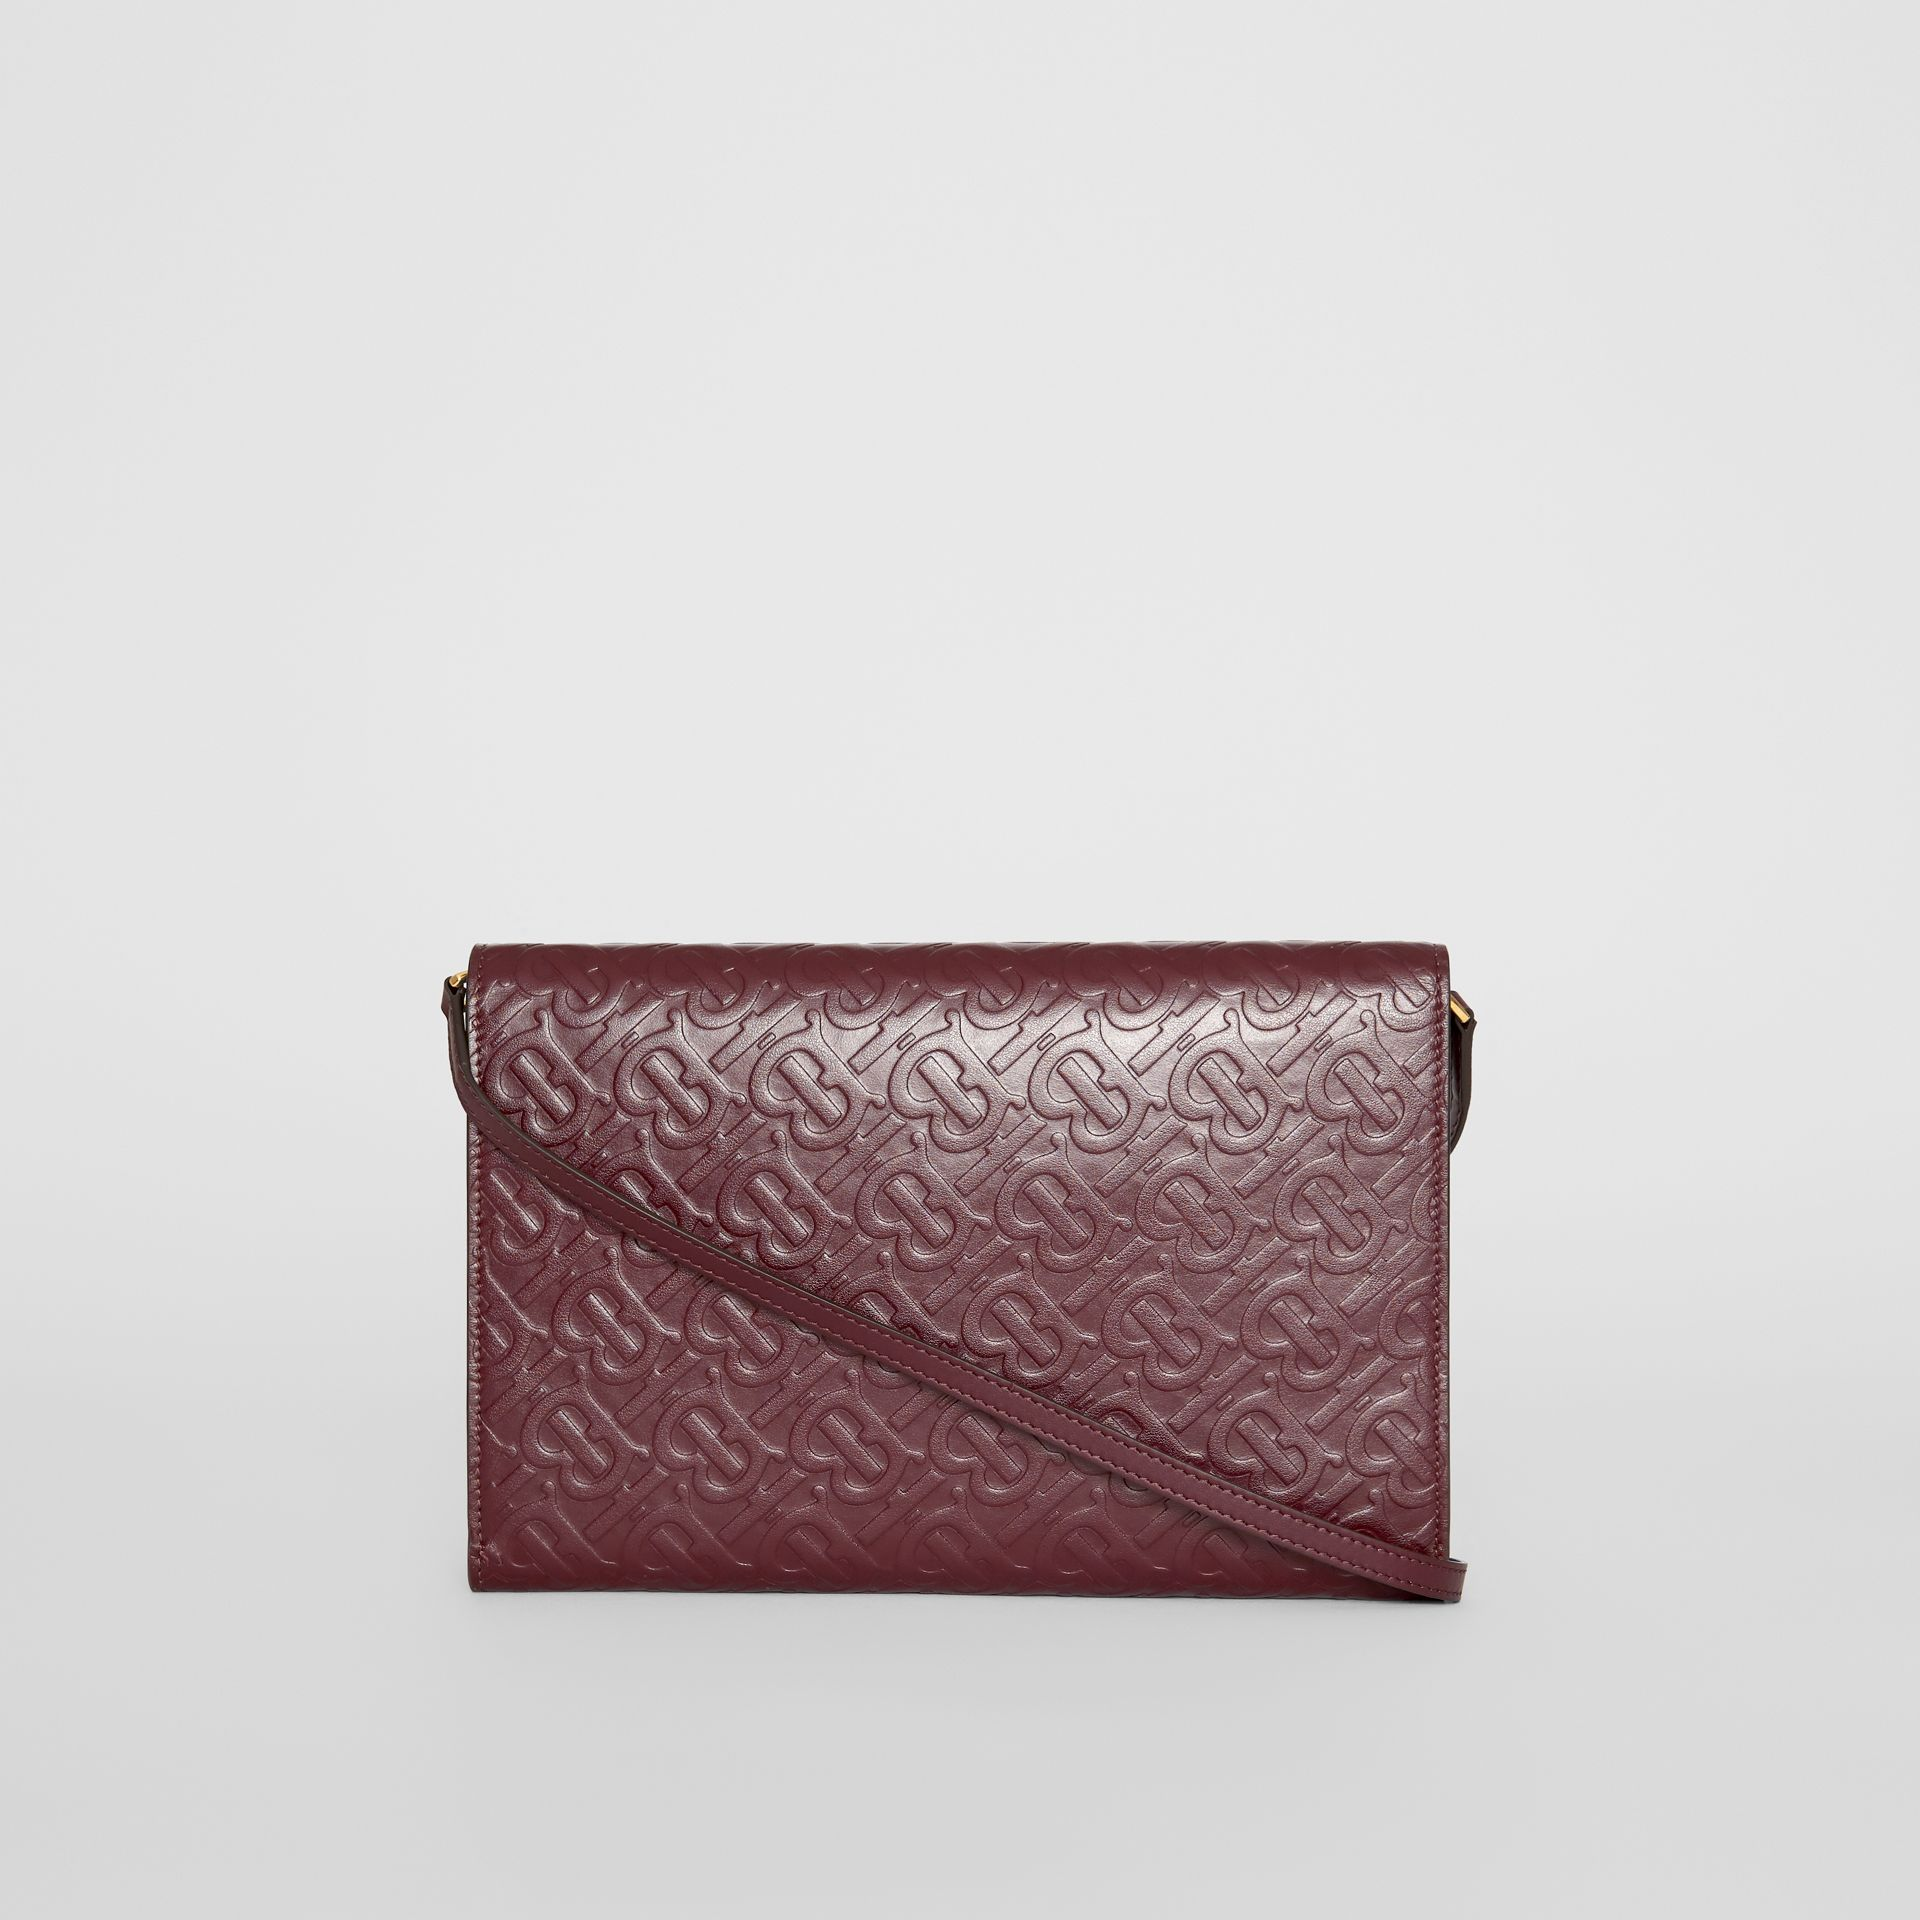 Sac en cuir Monogram avec sangle amovible (Oxblood) - Femme | Burberry Canada - photo de la galerie 5